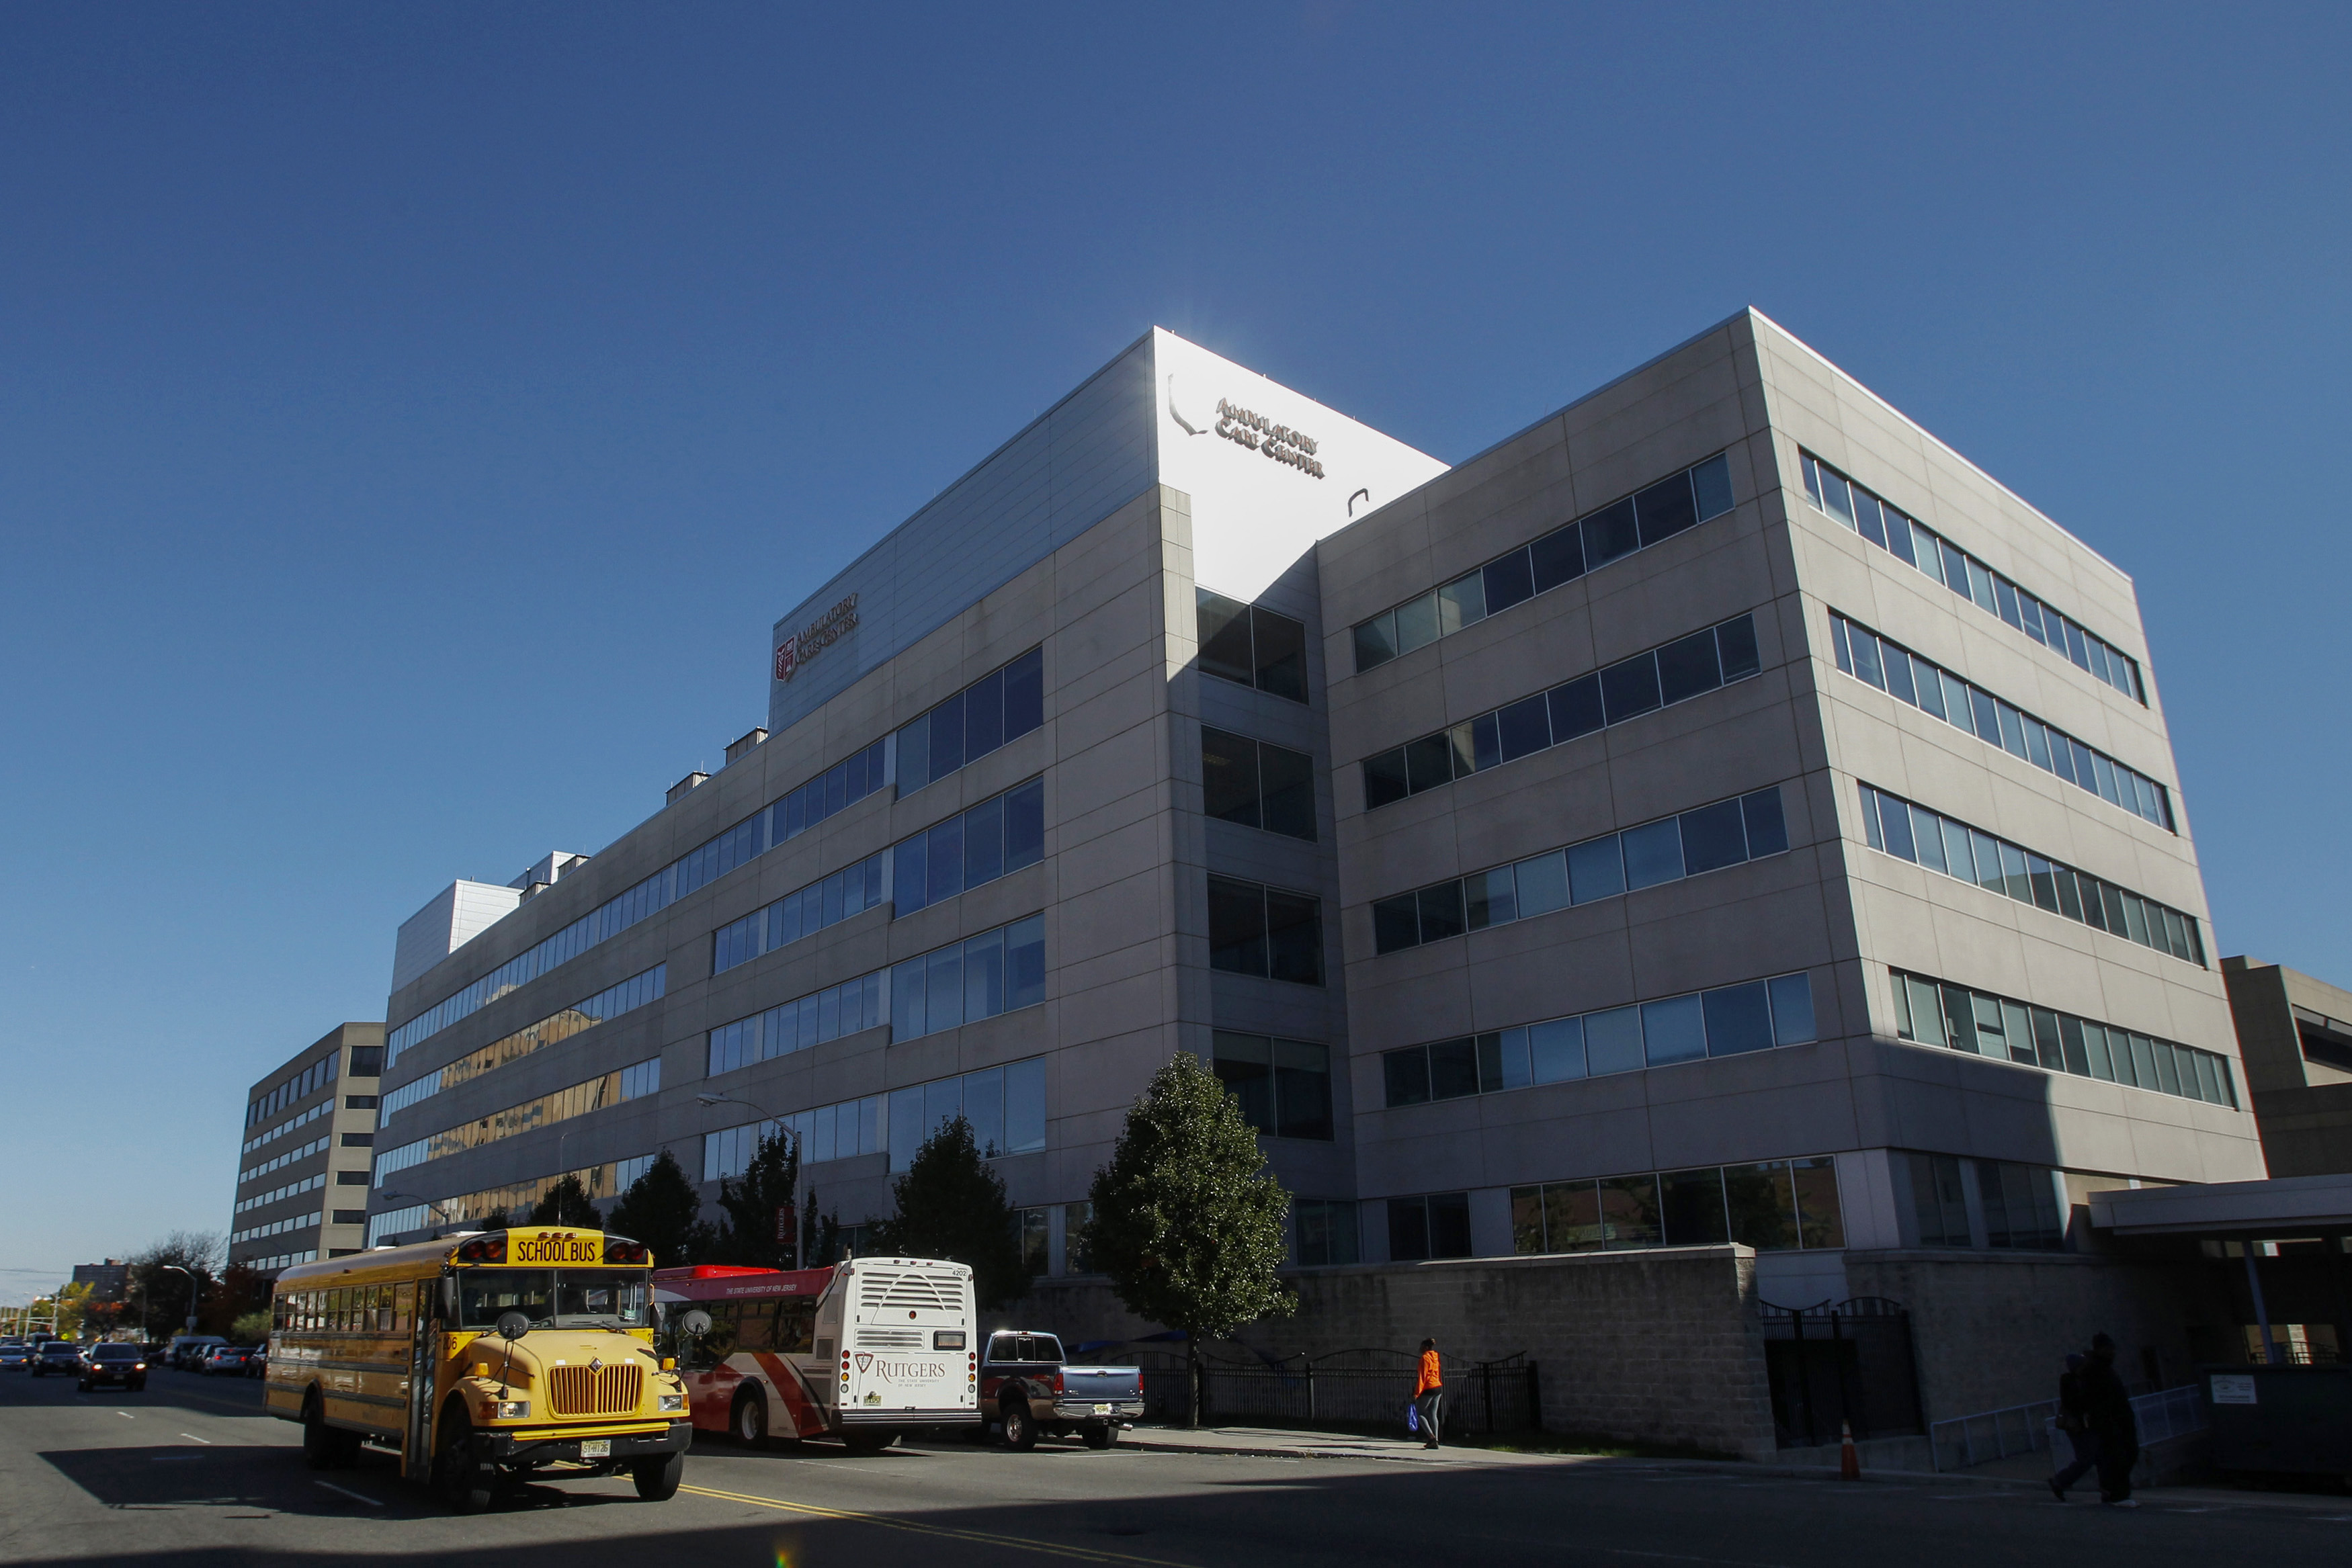 A hospital seen from street level